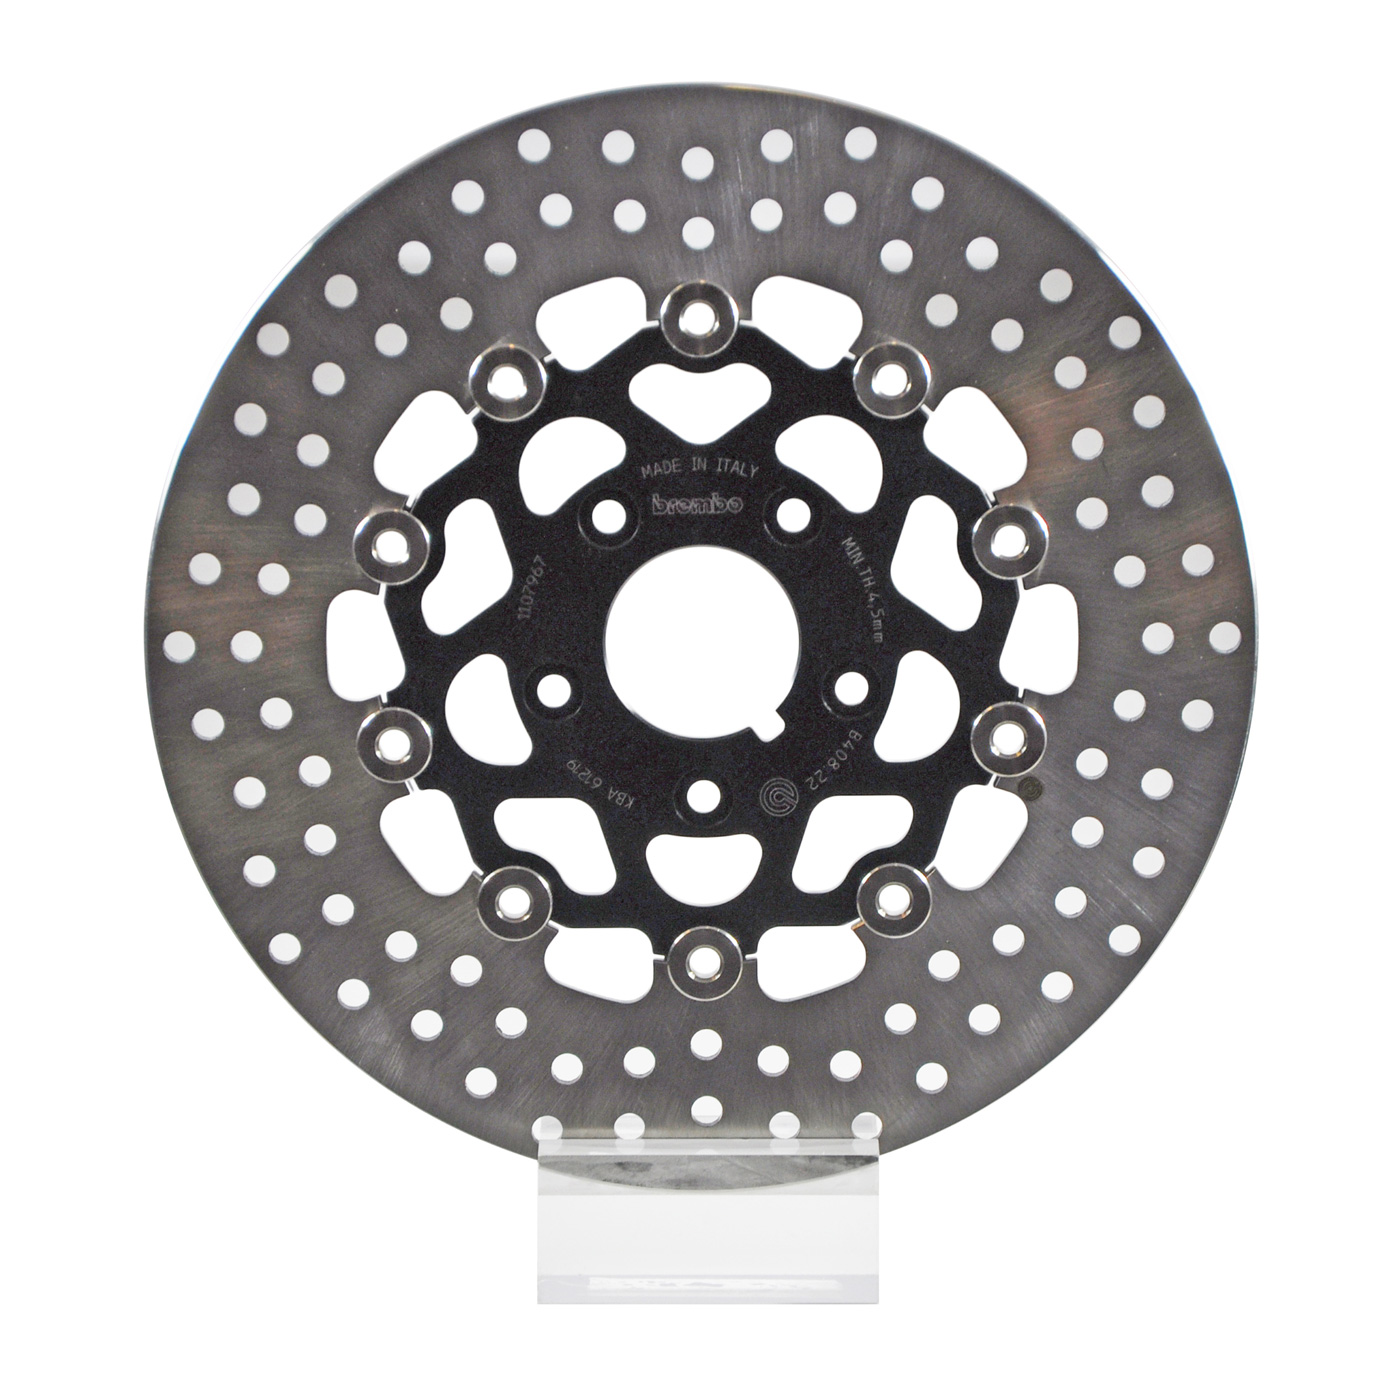 Brembo Serie Oro Brake Rotor 78B40822, one (1) Floating Front Disk for  Harley-Davidson produced before 1999, dim 290x50mm